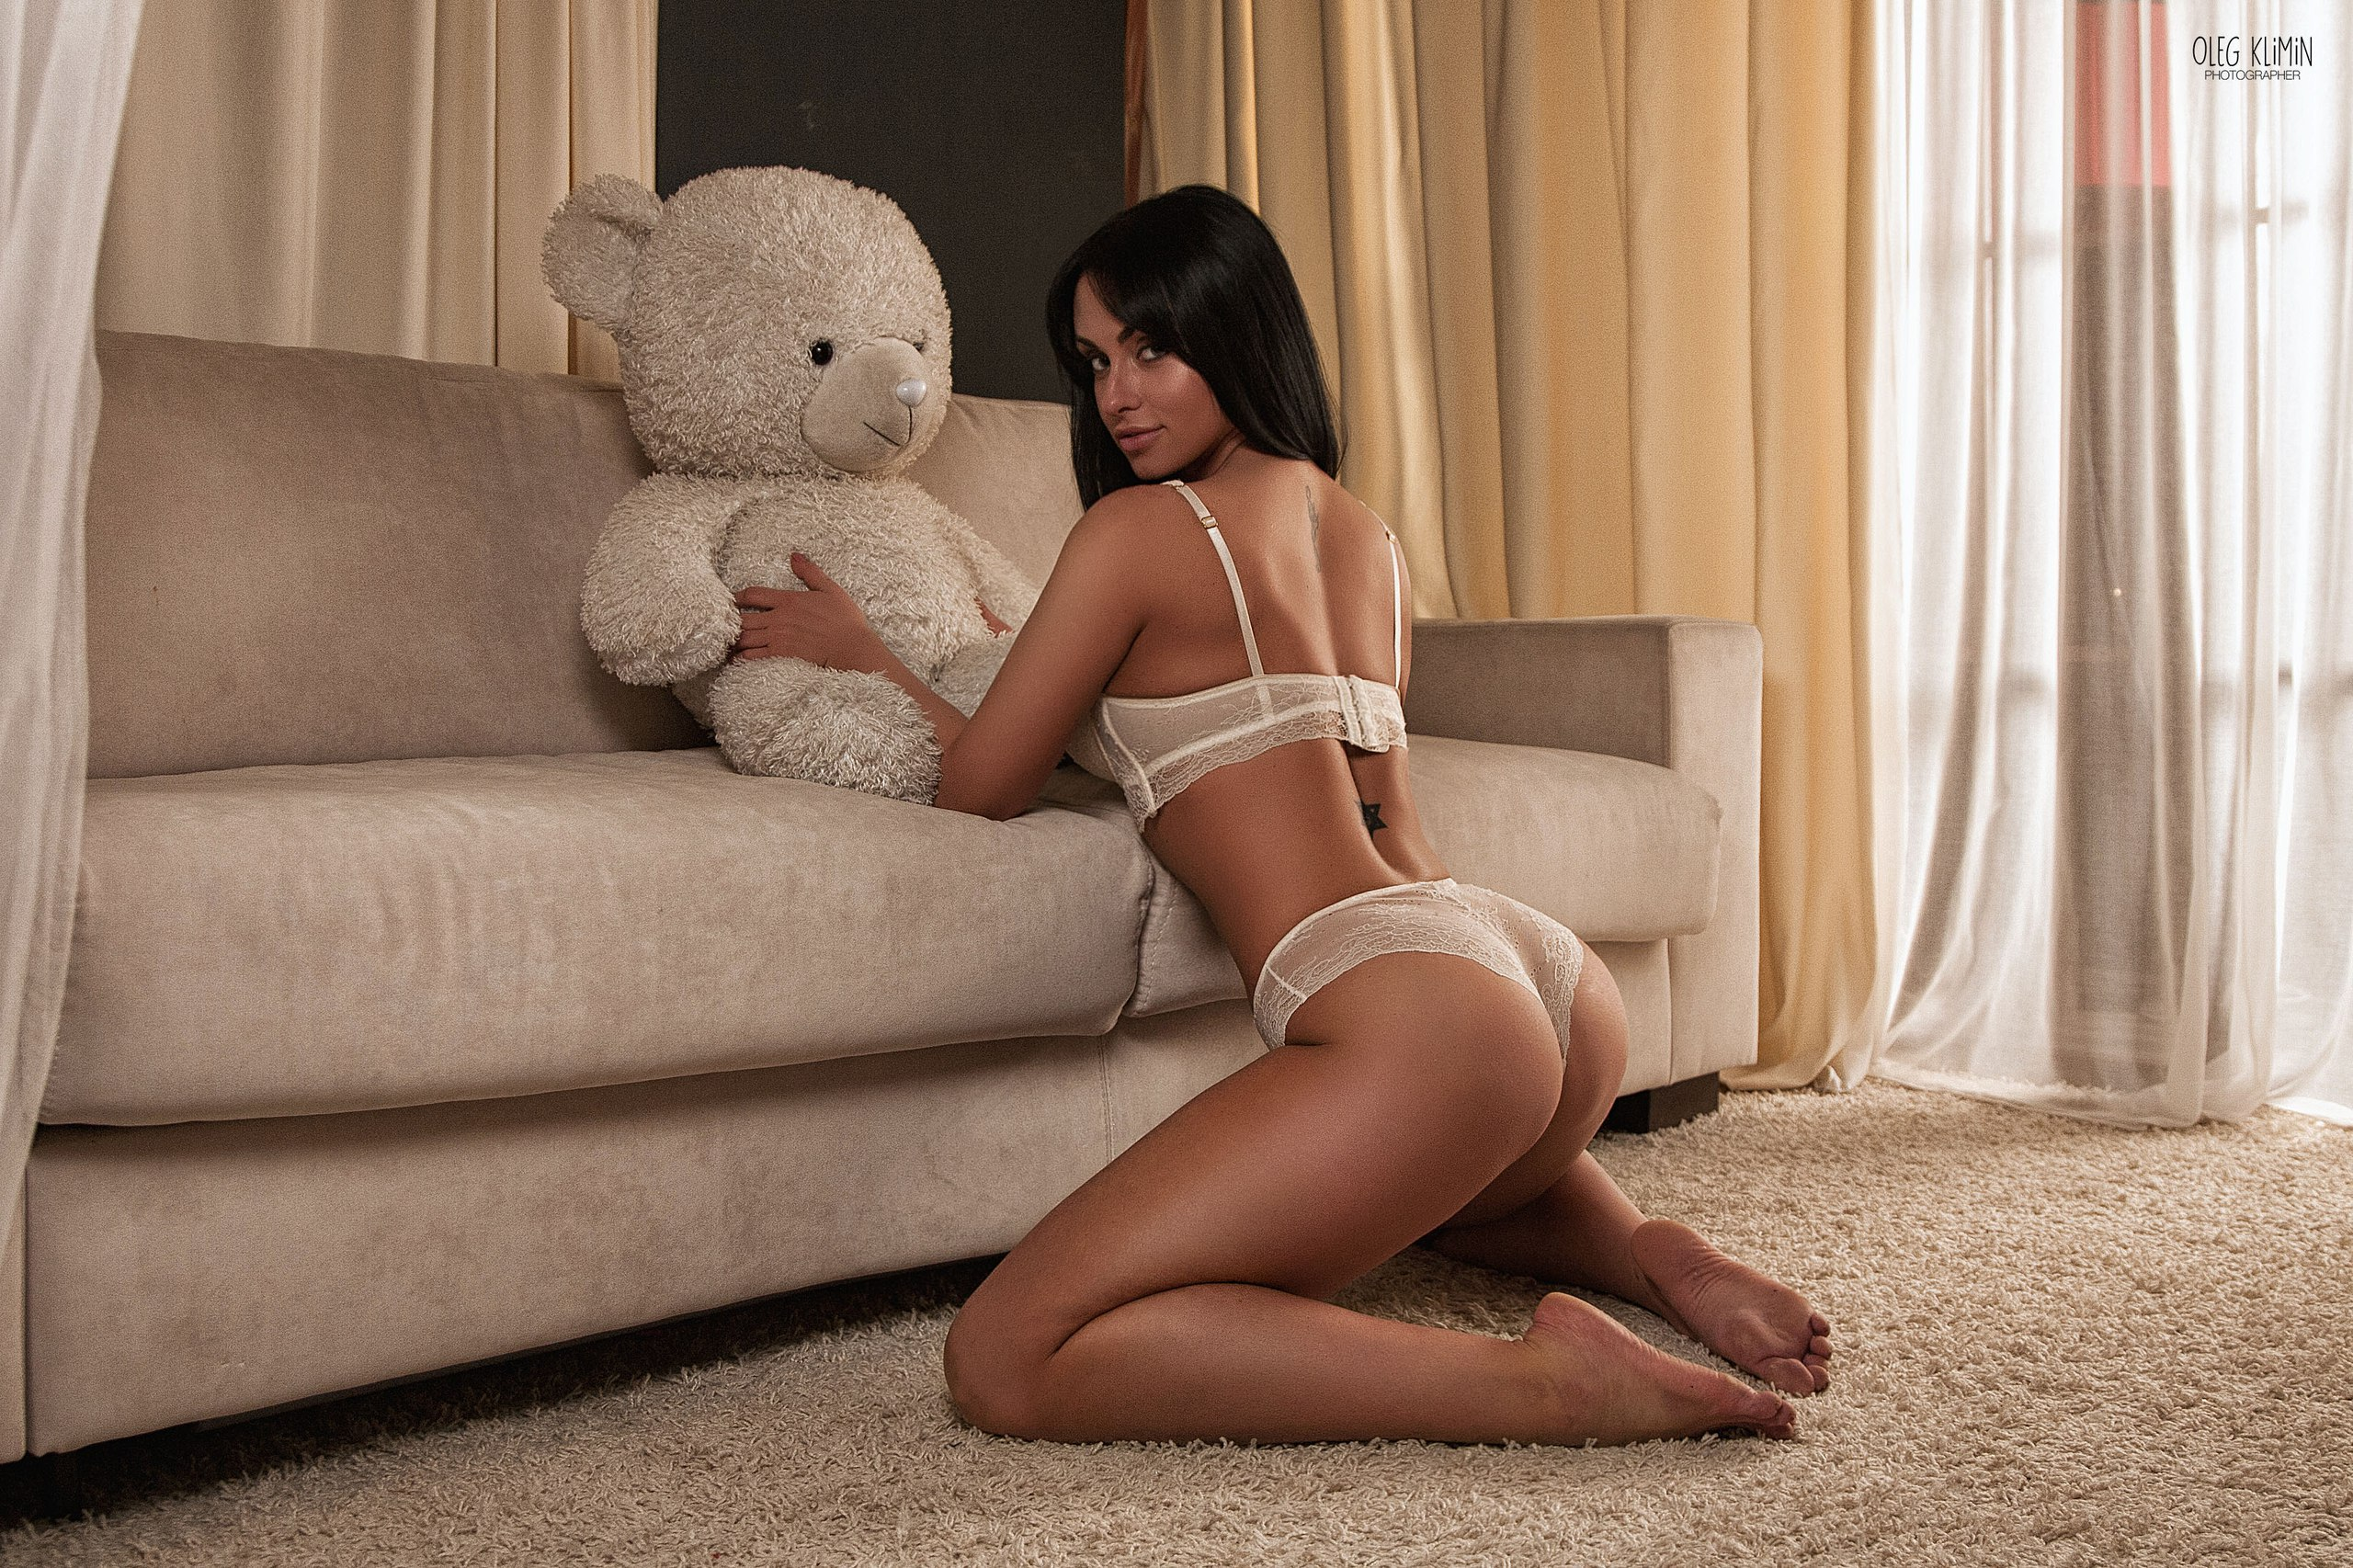 People 2560x1706 women tanned ass teddy bears kneeling tattoo couch Oleg Klimin arched back dark hair lace looking at viewer barefoot white lingerie lingerie white panties panties white bra bra looking back